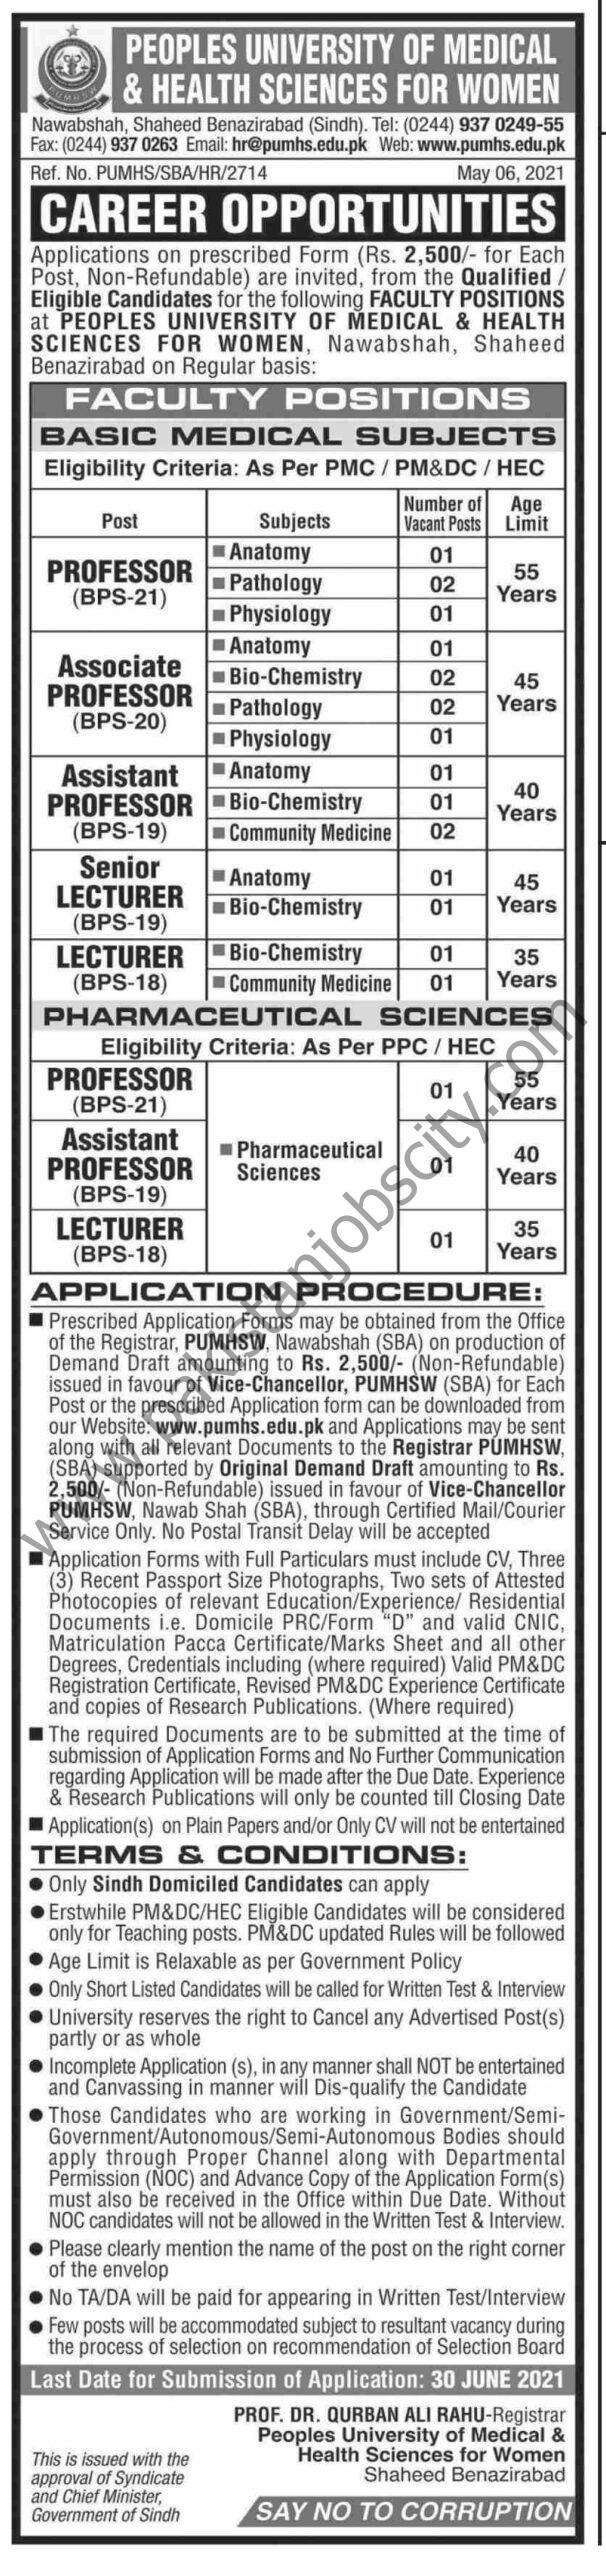 Peoples University of Medical & Health Sciences for Women Jobs May 2021